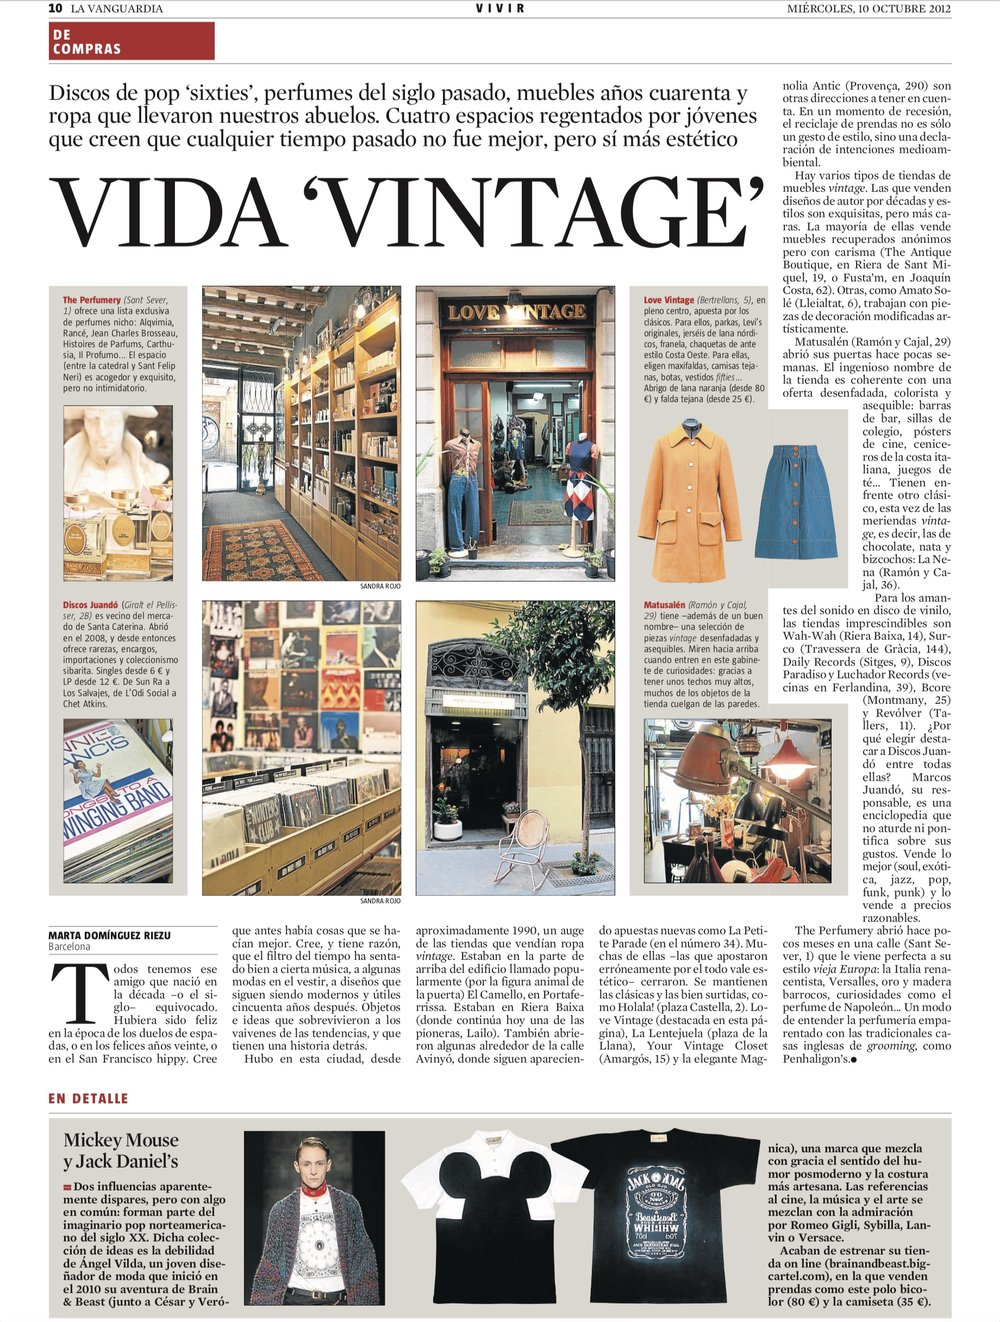 2012-10-10 La Vanguardia The Perfumery y DiscosJuando.jpeg